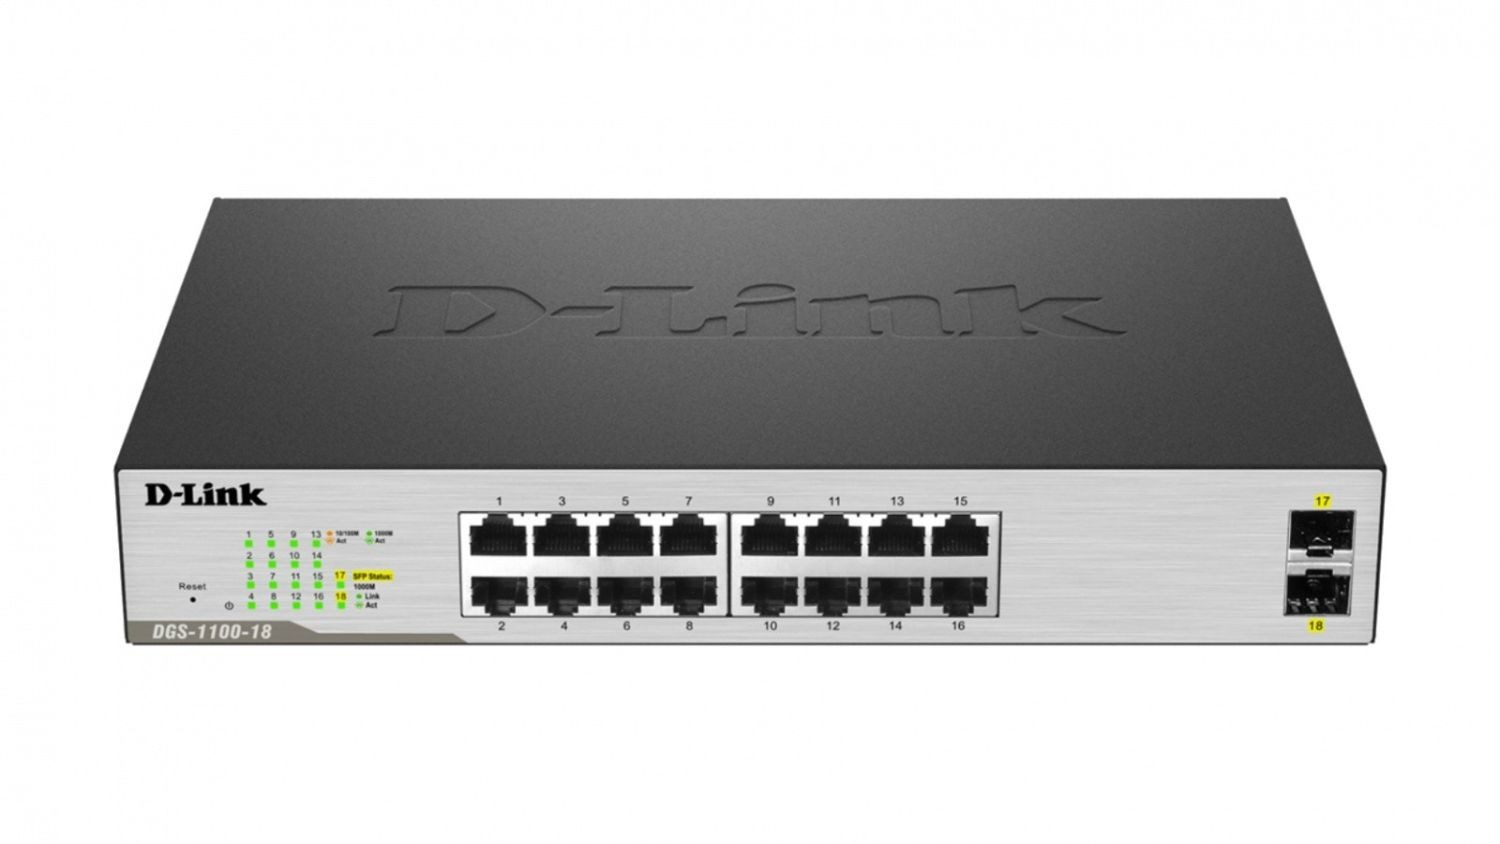 D-Link DGS-1100-18 Easy Smart Switch 10/100/1000